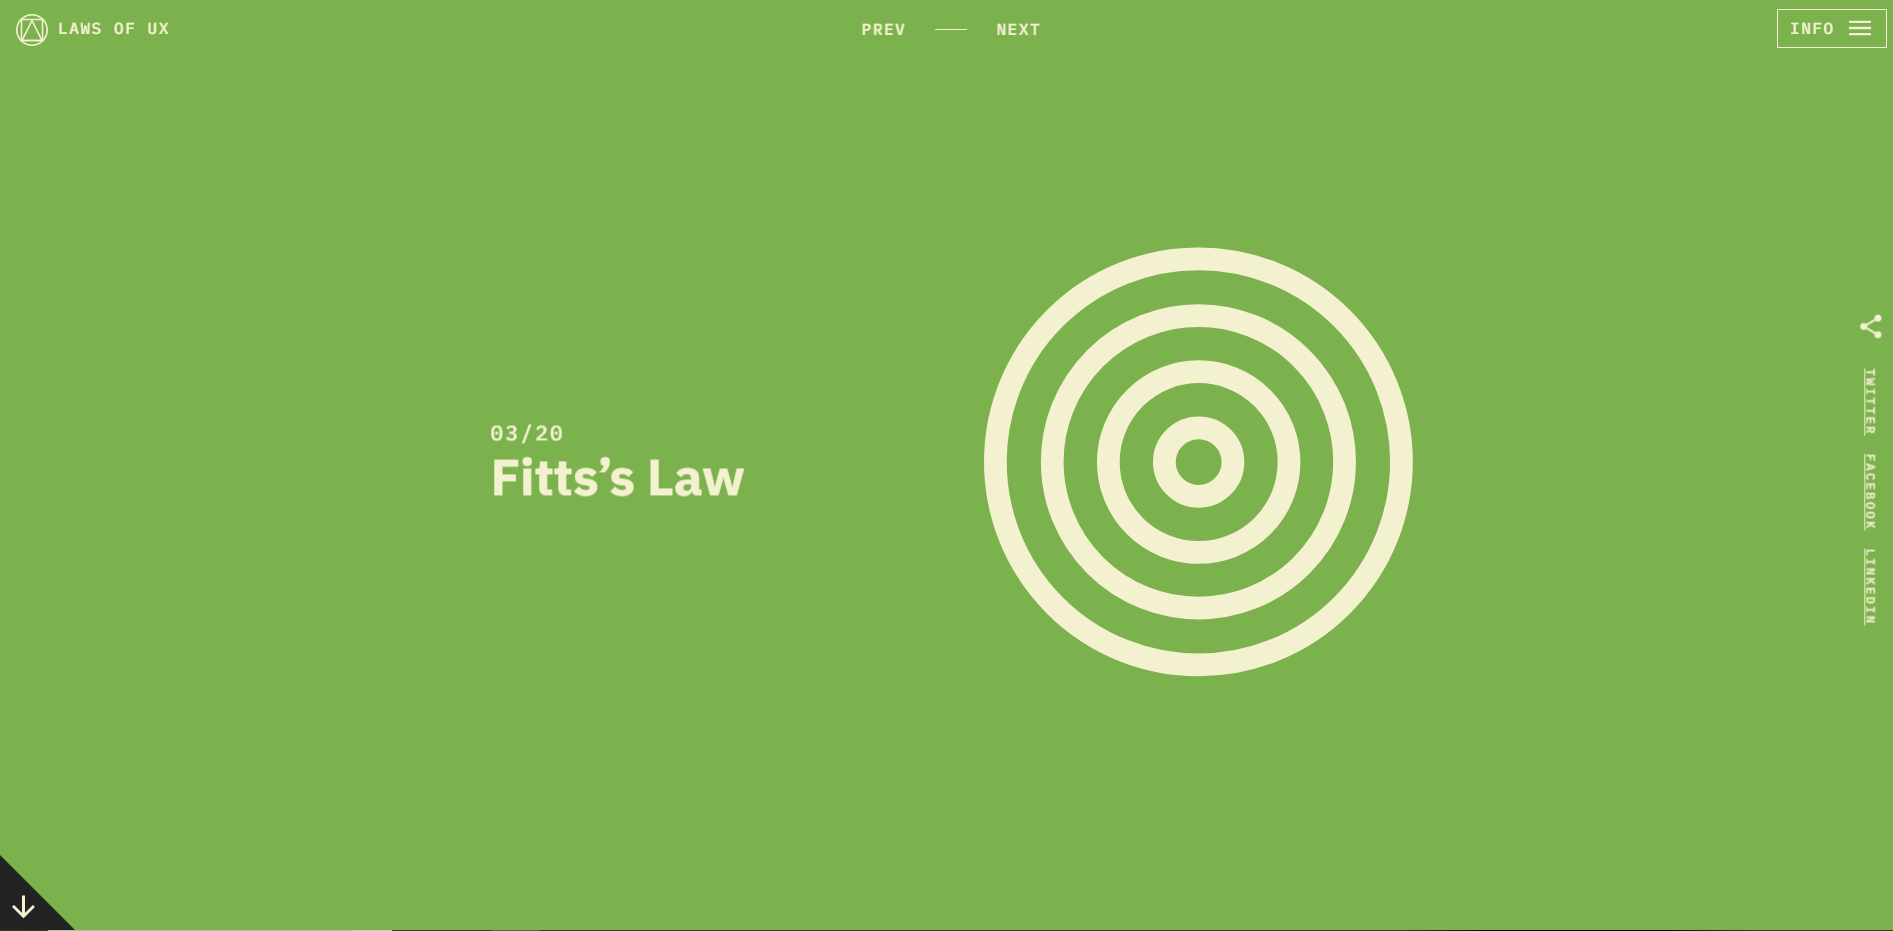 https://lawsofux.com/fittss-law